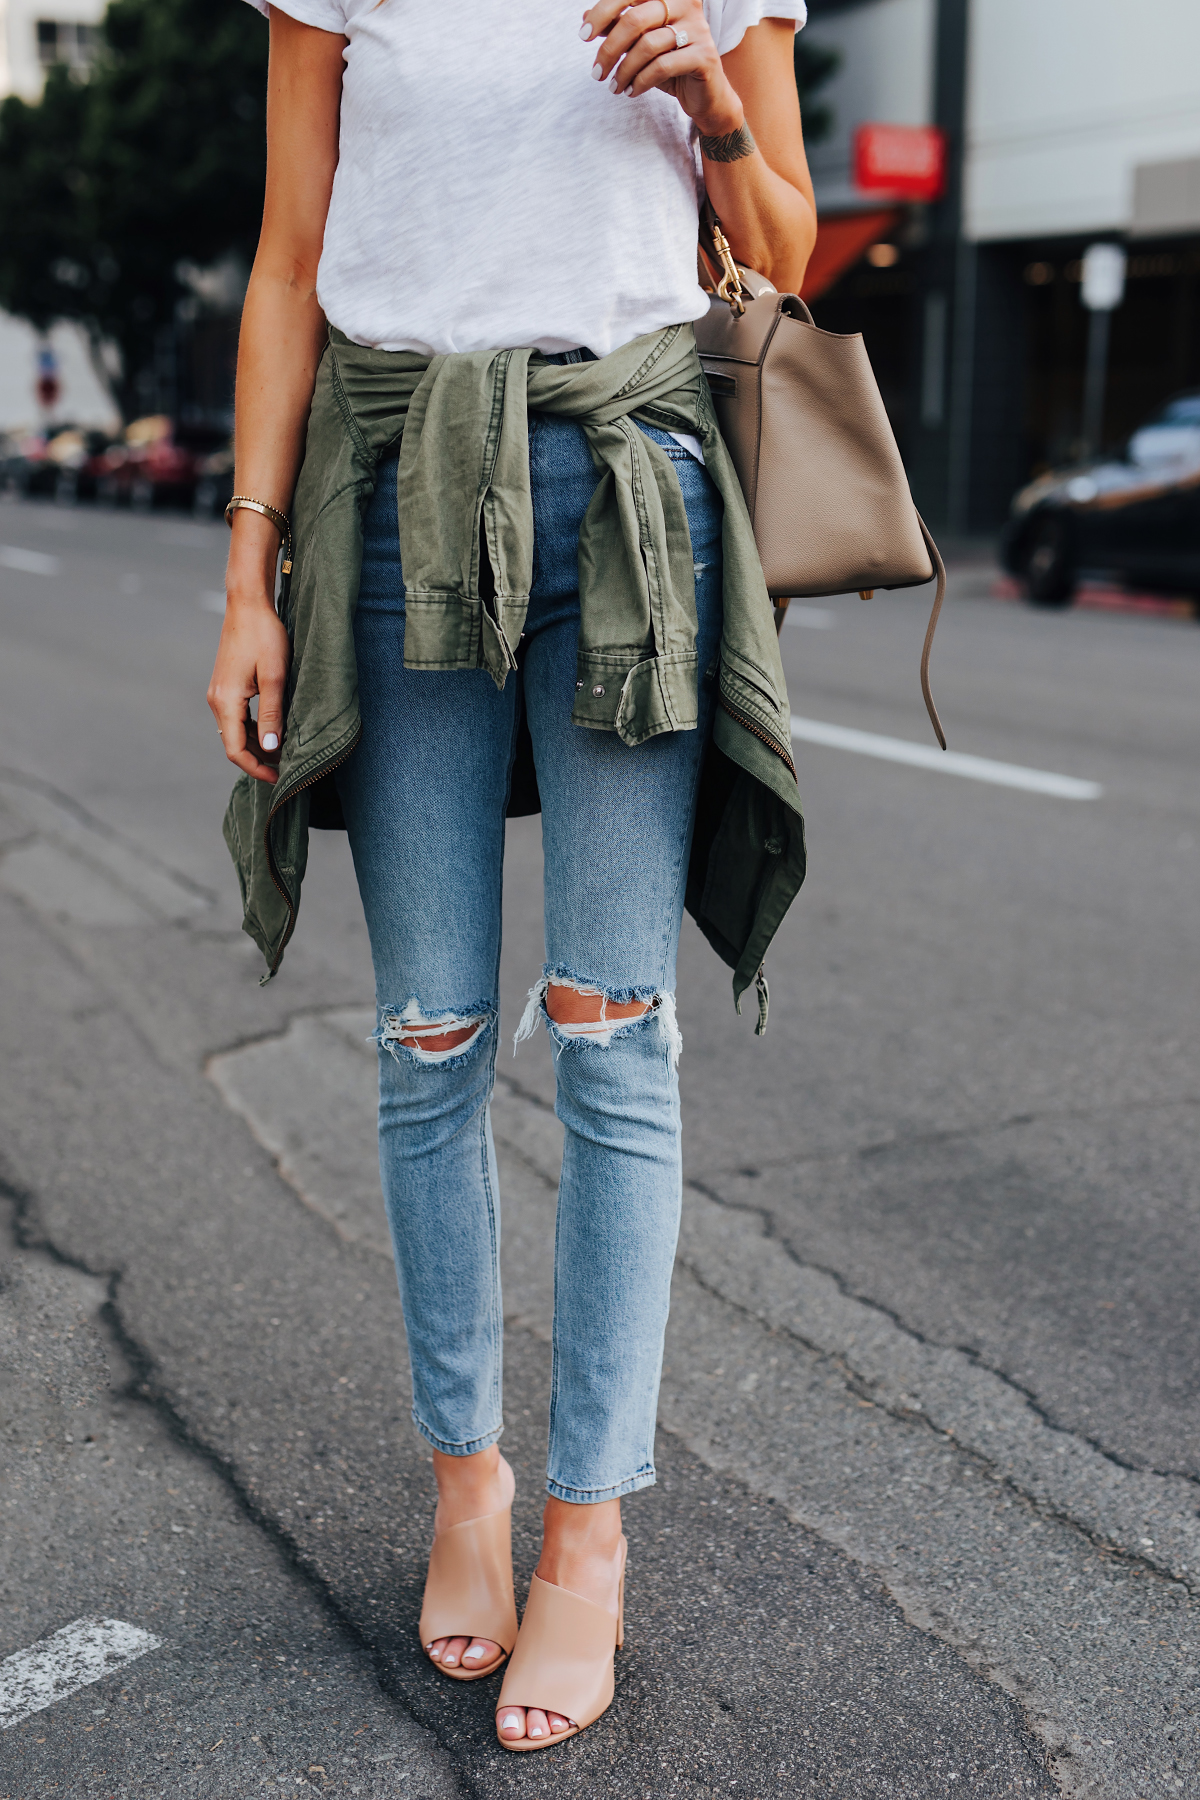 Woman Wearing ATM White Tshirt Ripped Skinny Jeans Green Utility Jacket Vince Hanna Nude Heeled Mules Fashion Jackson San Diego Fashion Blogger Street Style